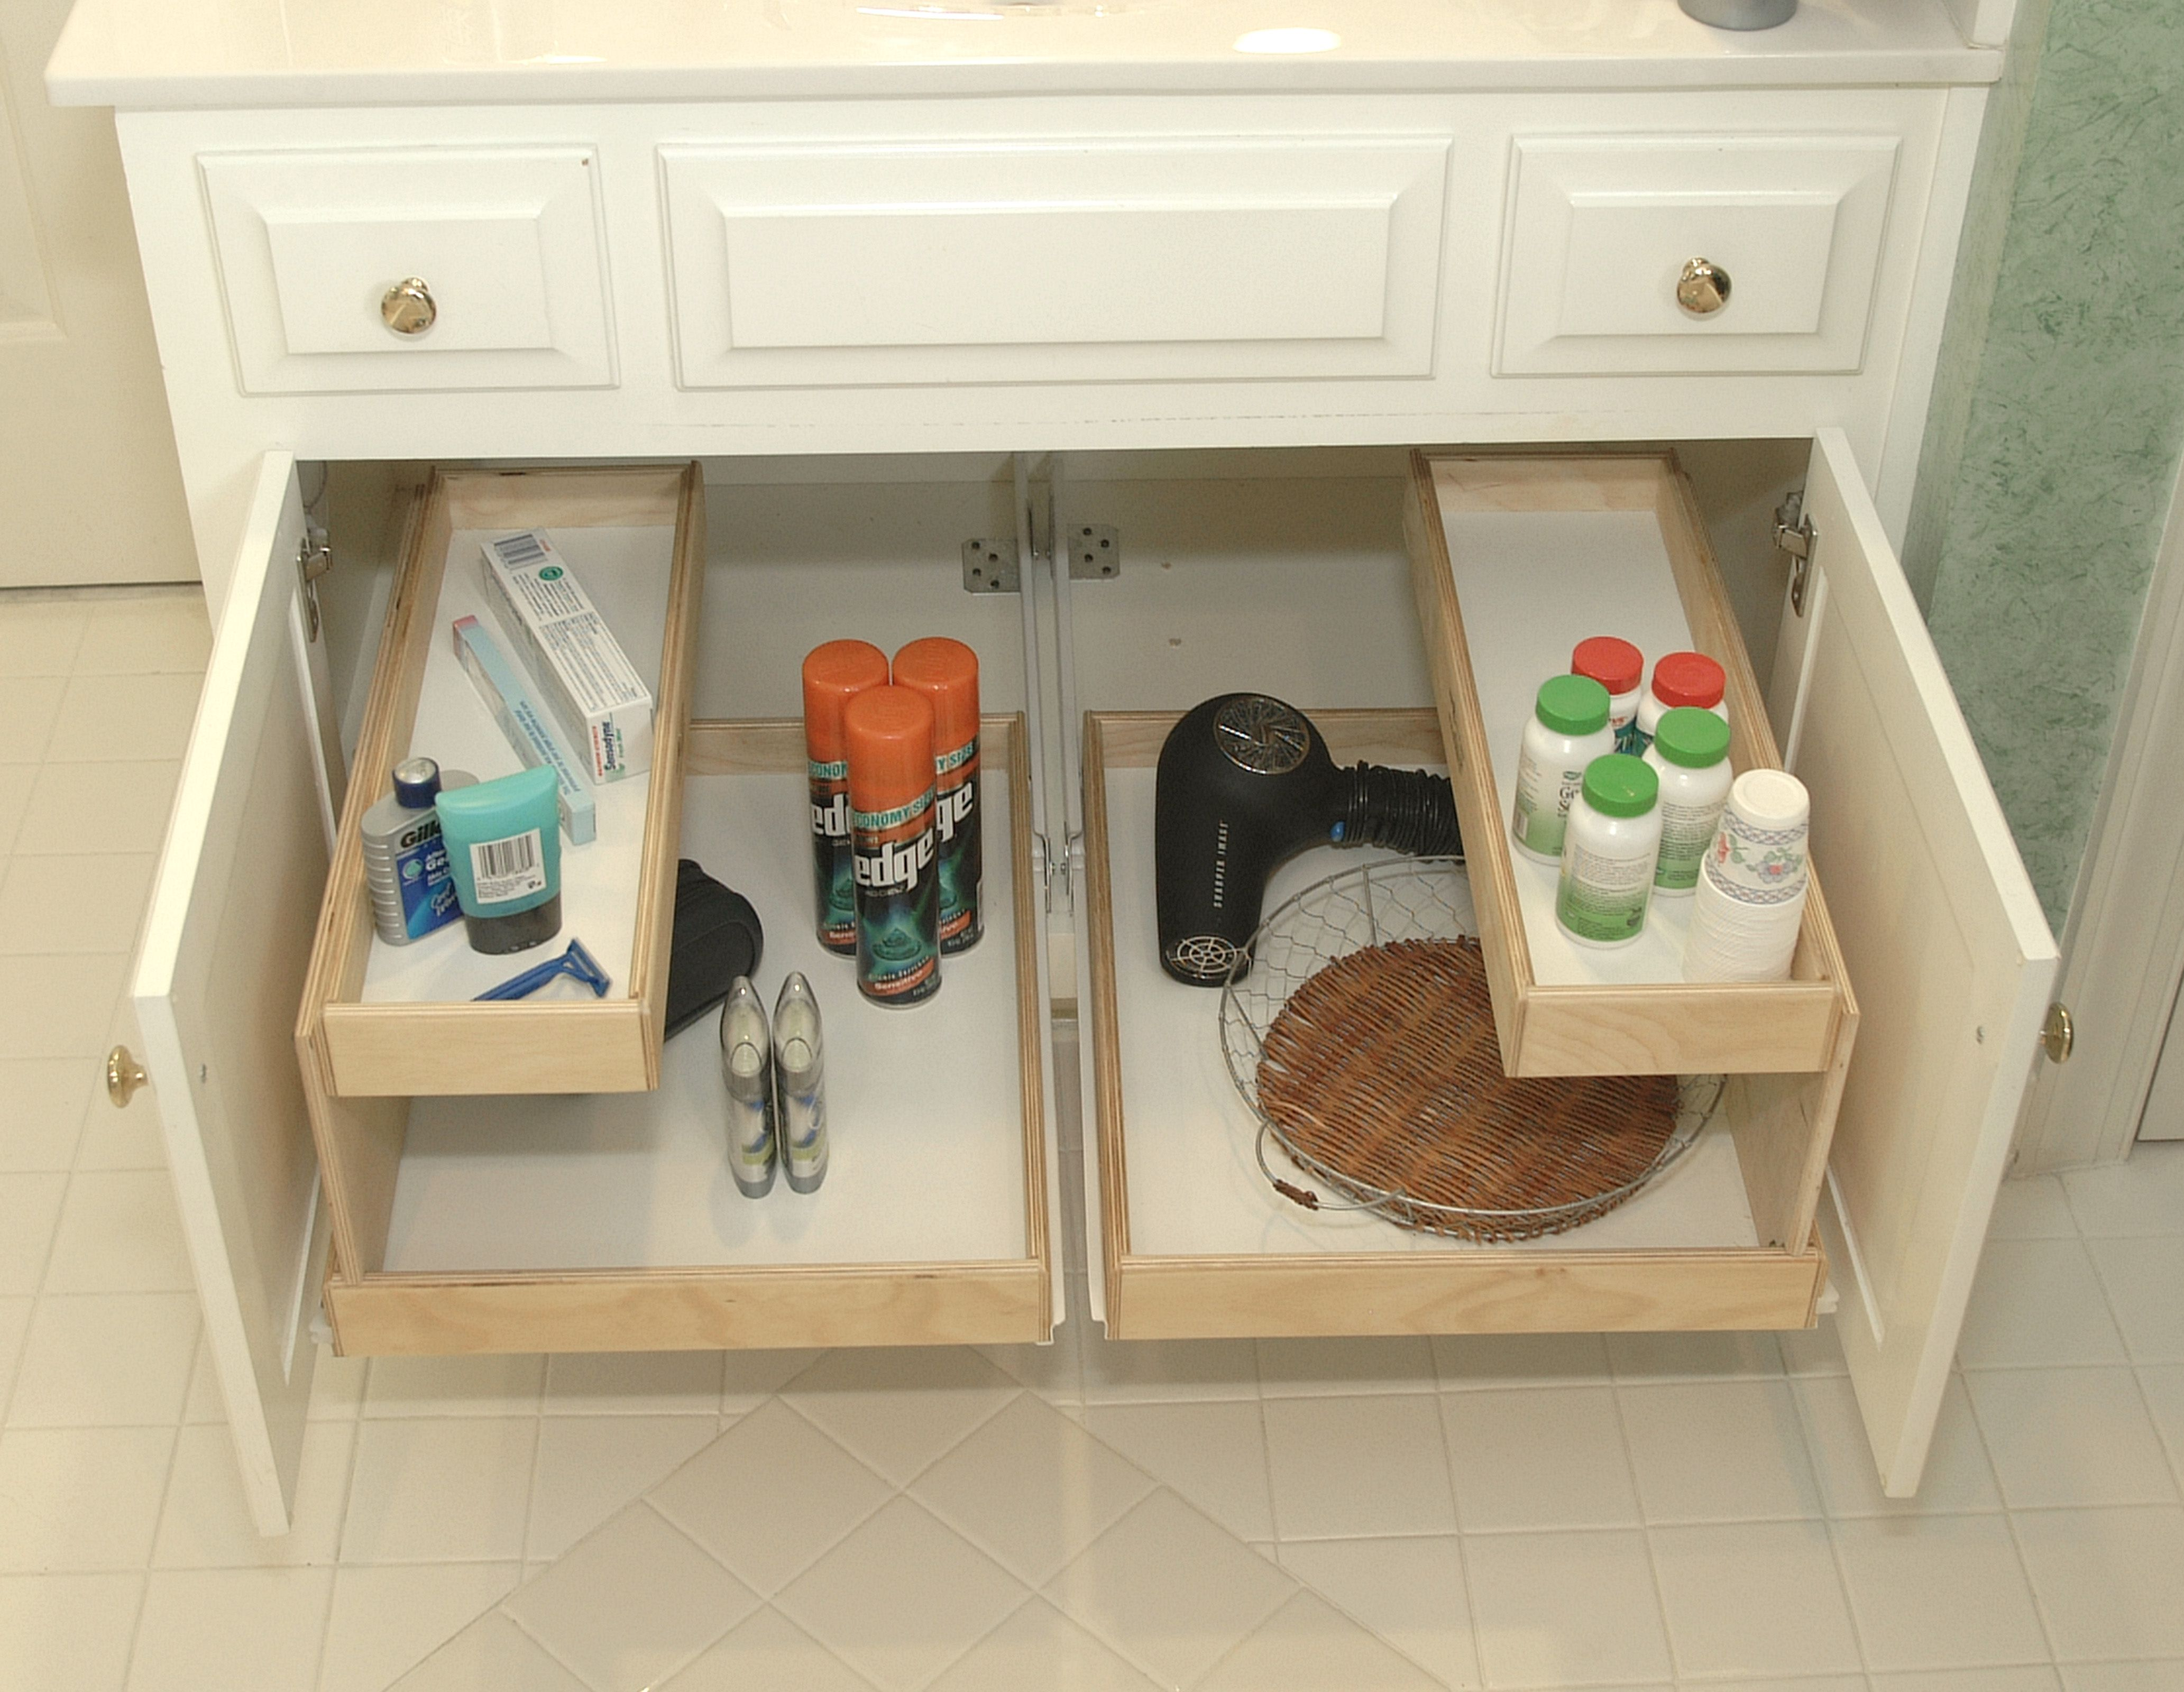 Ordinaire Bathroom, Under Sinks Bathroom Cabinet Organizing Ideas With Small Wooden  Cabinet With Drawer And Tray Makeup Shelves Ideas: Bathroom Organization  Ideas To ...